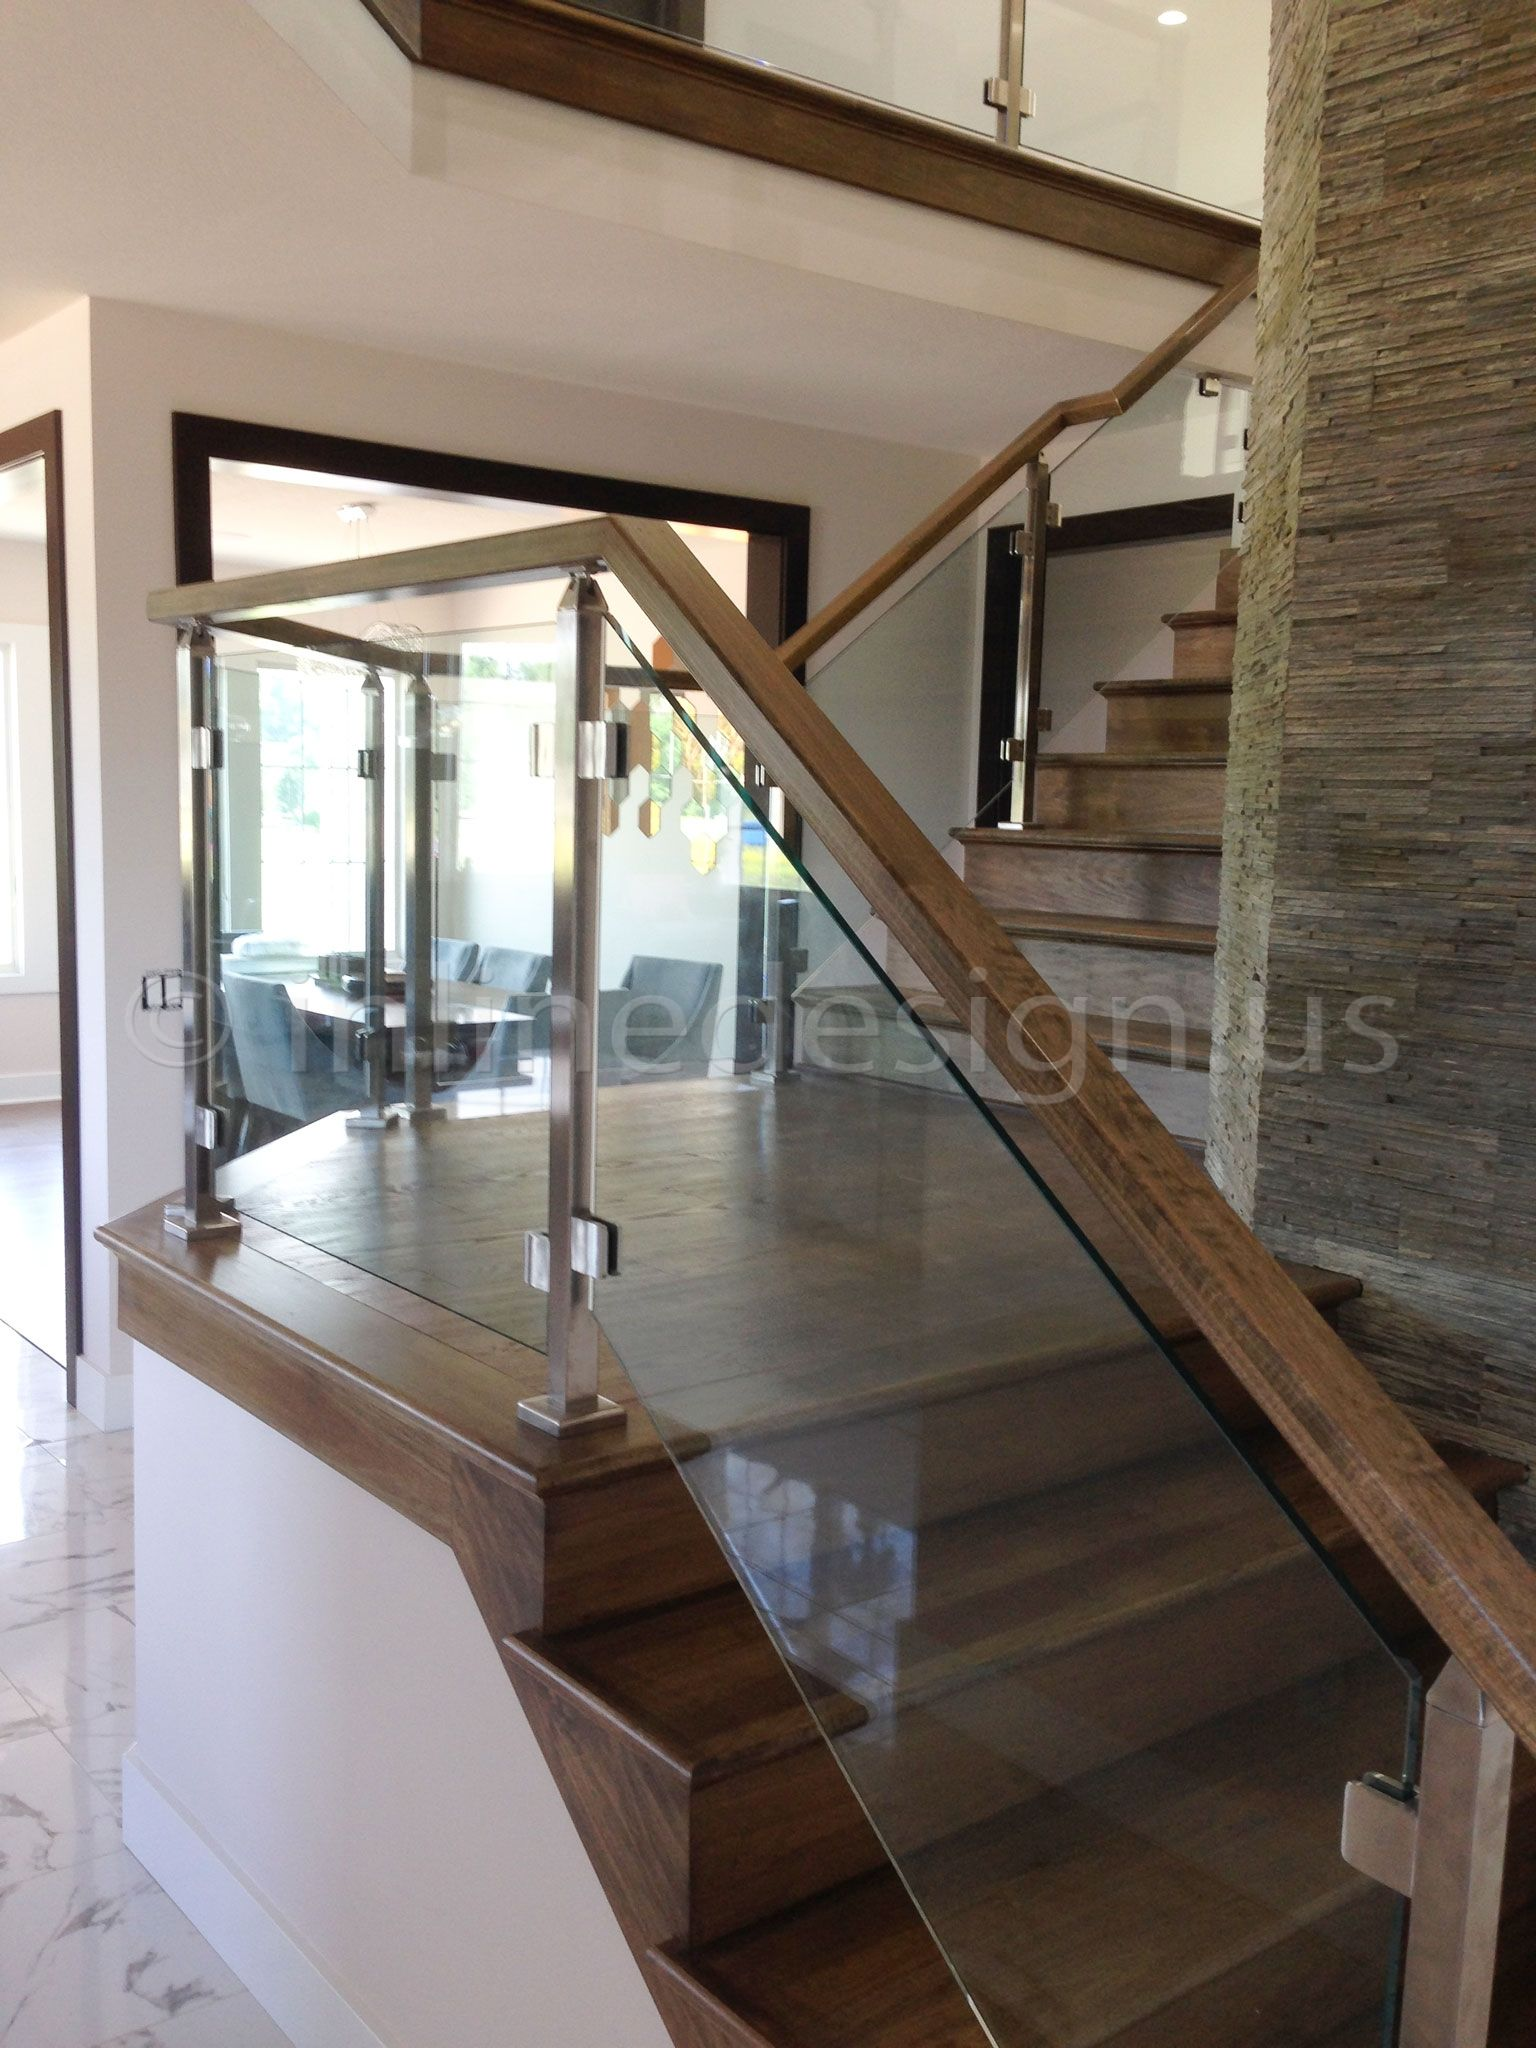 Glass Panels In A Metal Rail For Staircase Description From